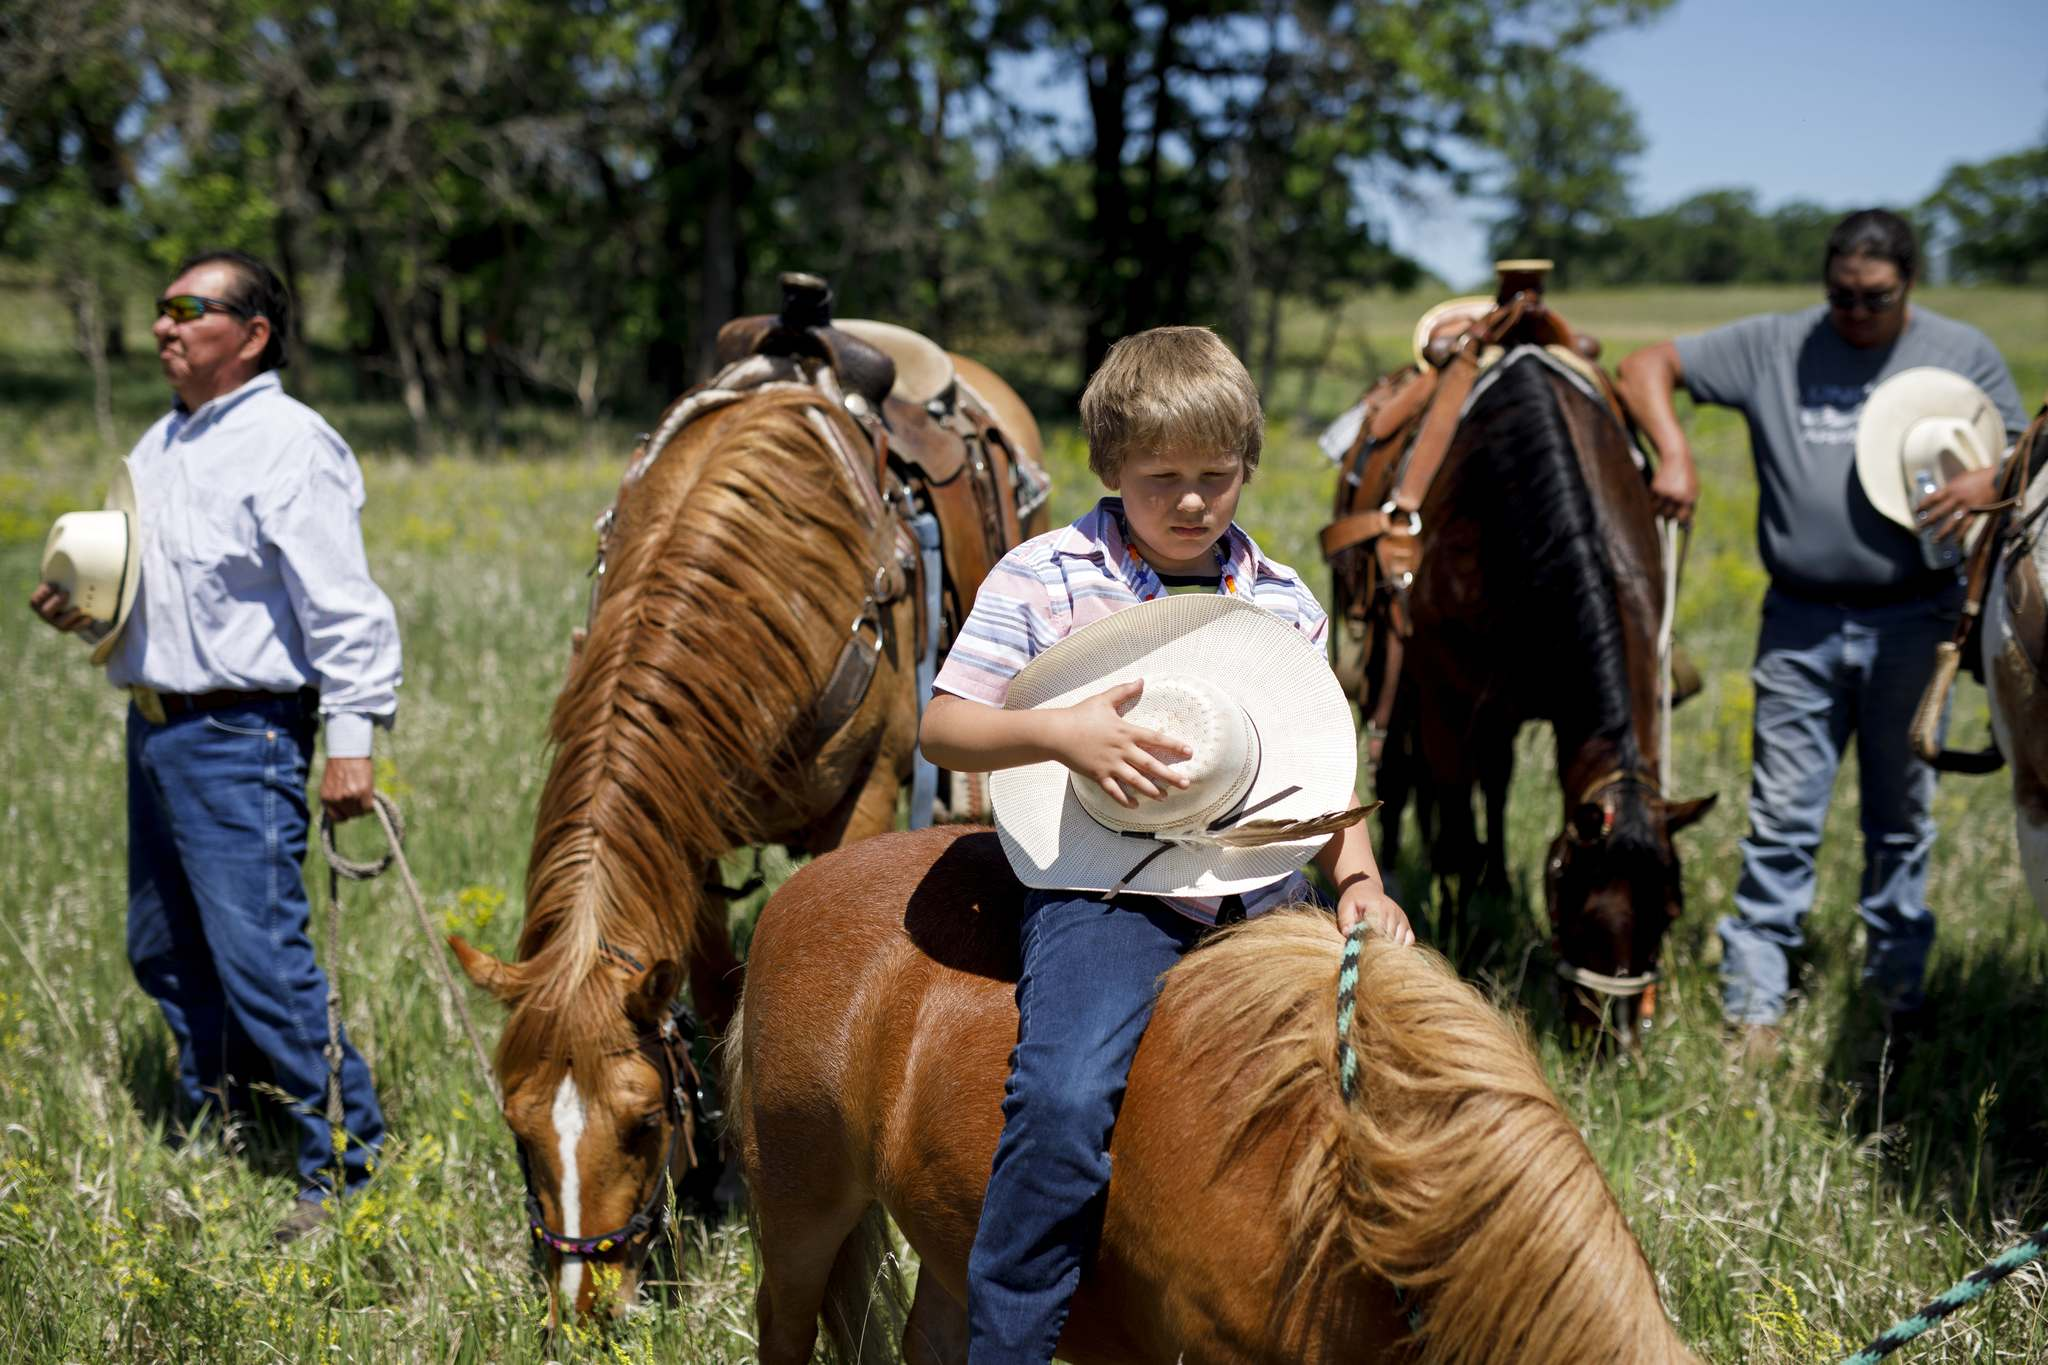 Seven-year-old Jase Tacan holds his hat to his chest atop his miniature horse Charlie while drummers perform at the former Brandon Indian Residential School site on Monday. Dakota Nation Unity Riders from Sioux Valley Dakota Nation and support riders rode to the school site from the Grand Valley Campground in honour of residential school victims and survivors. A ceremony was also held at the former school site, now owned by Sioux Valley Dakota Nation, where survivors from the First Nation attended. Please see Page A4 for more photos. (Tim Smith/The Brandon Sun)</p></p>